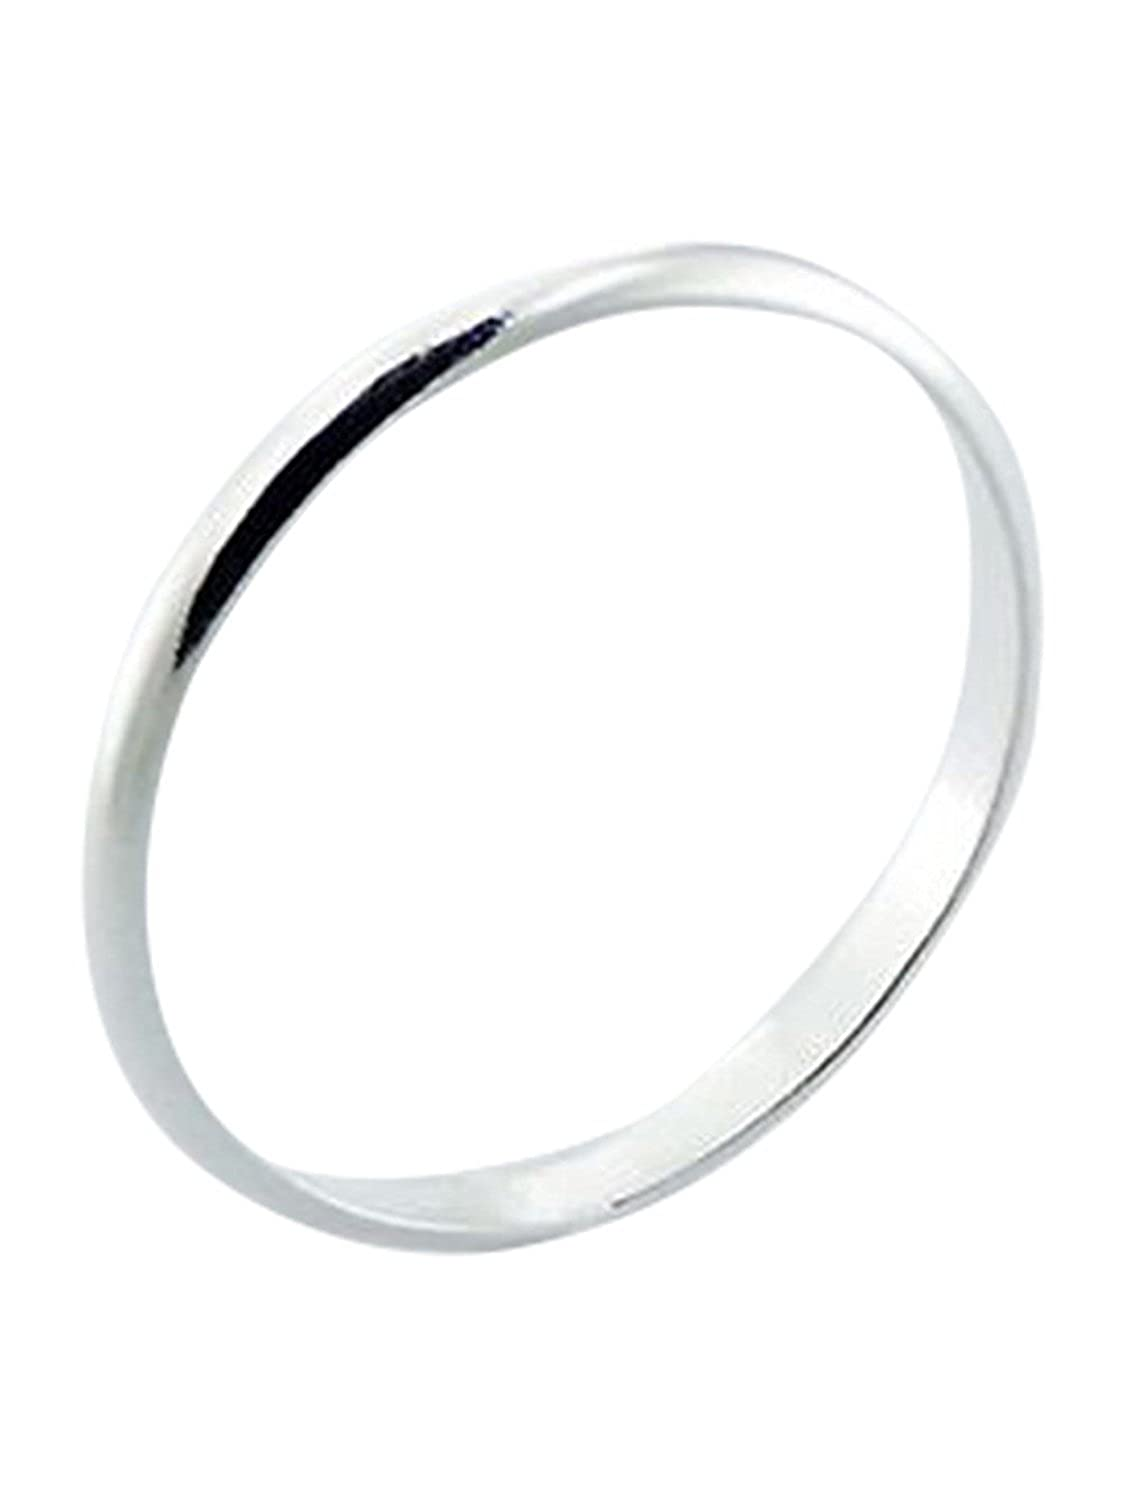 Sterling Silver Ring 2mm Band In Sizes G,H,I,J,K,L,M,N,O,P,Q,R,S,T,U,V,W,X,Y,Z Red Crimson 049